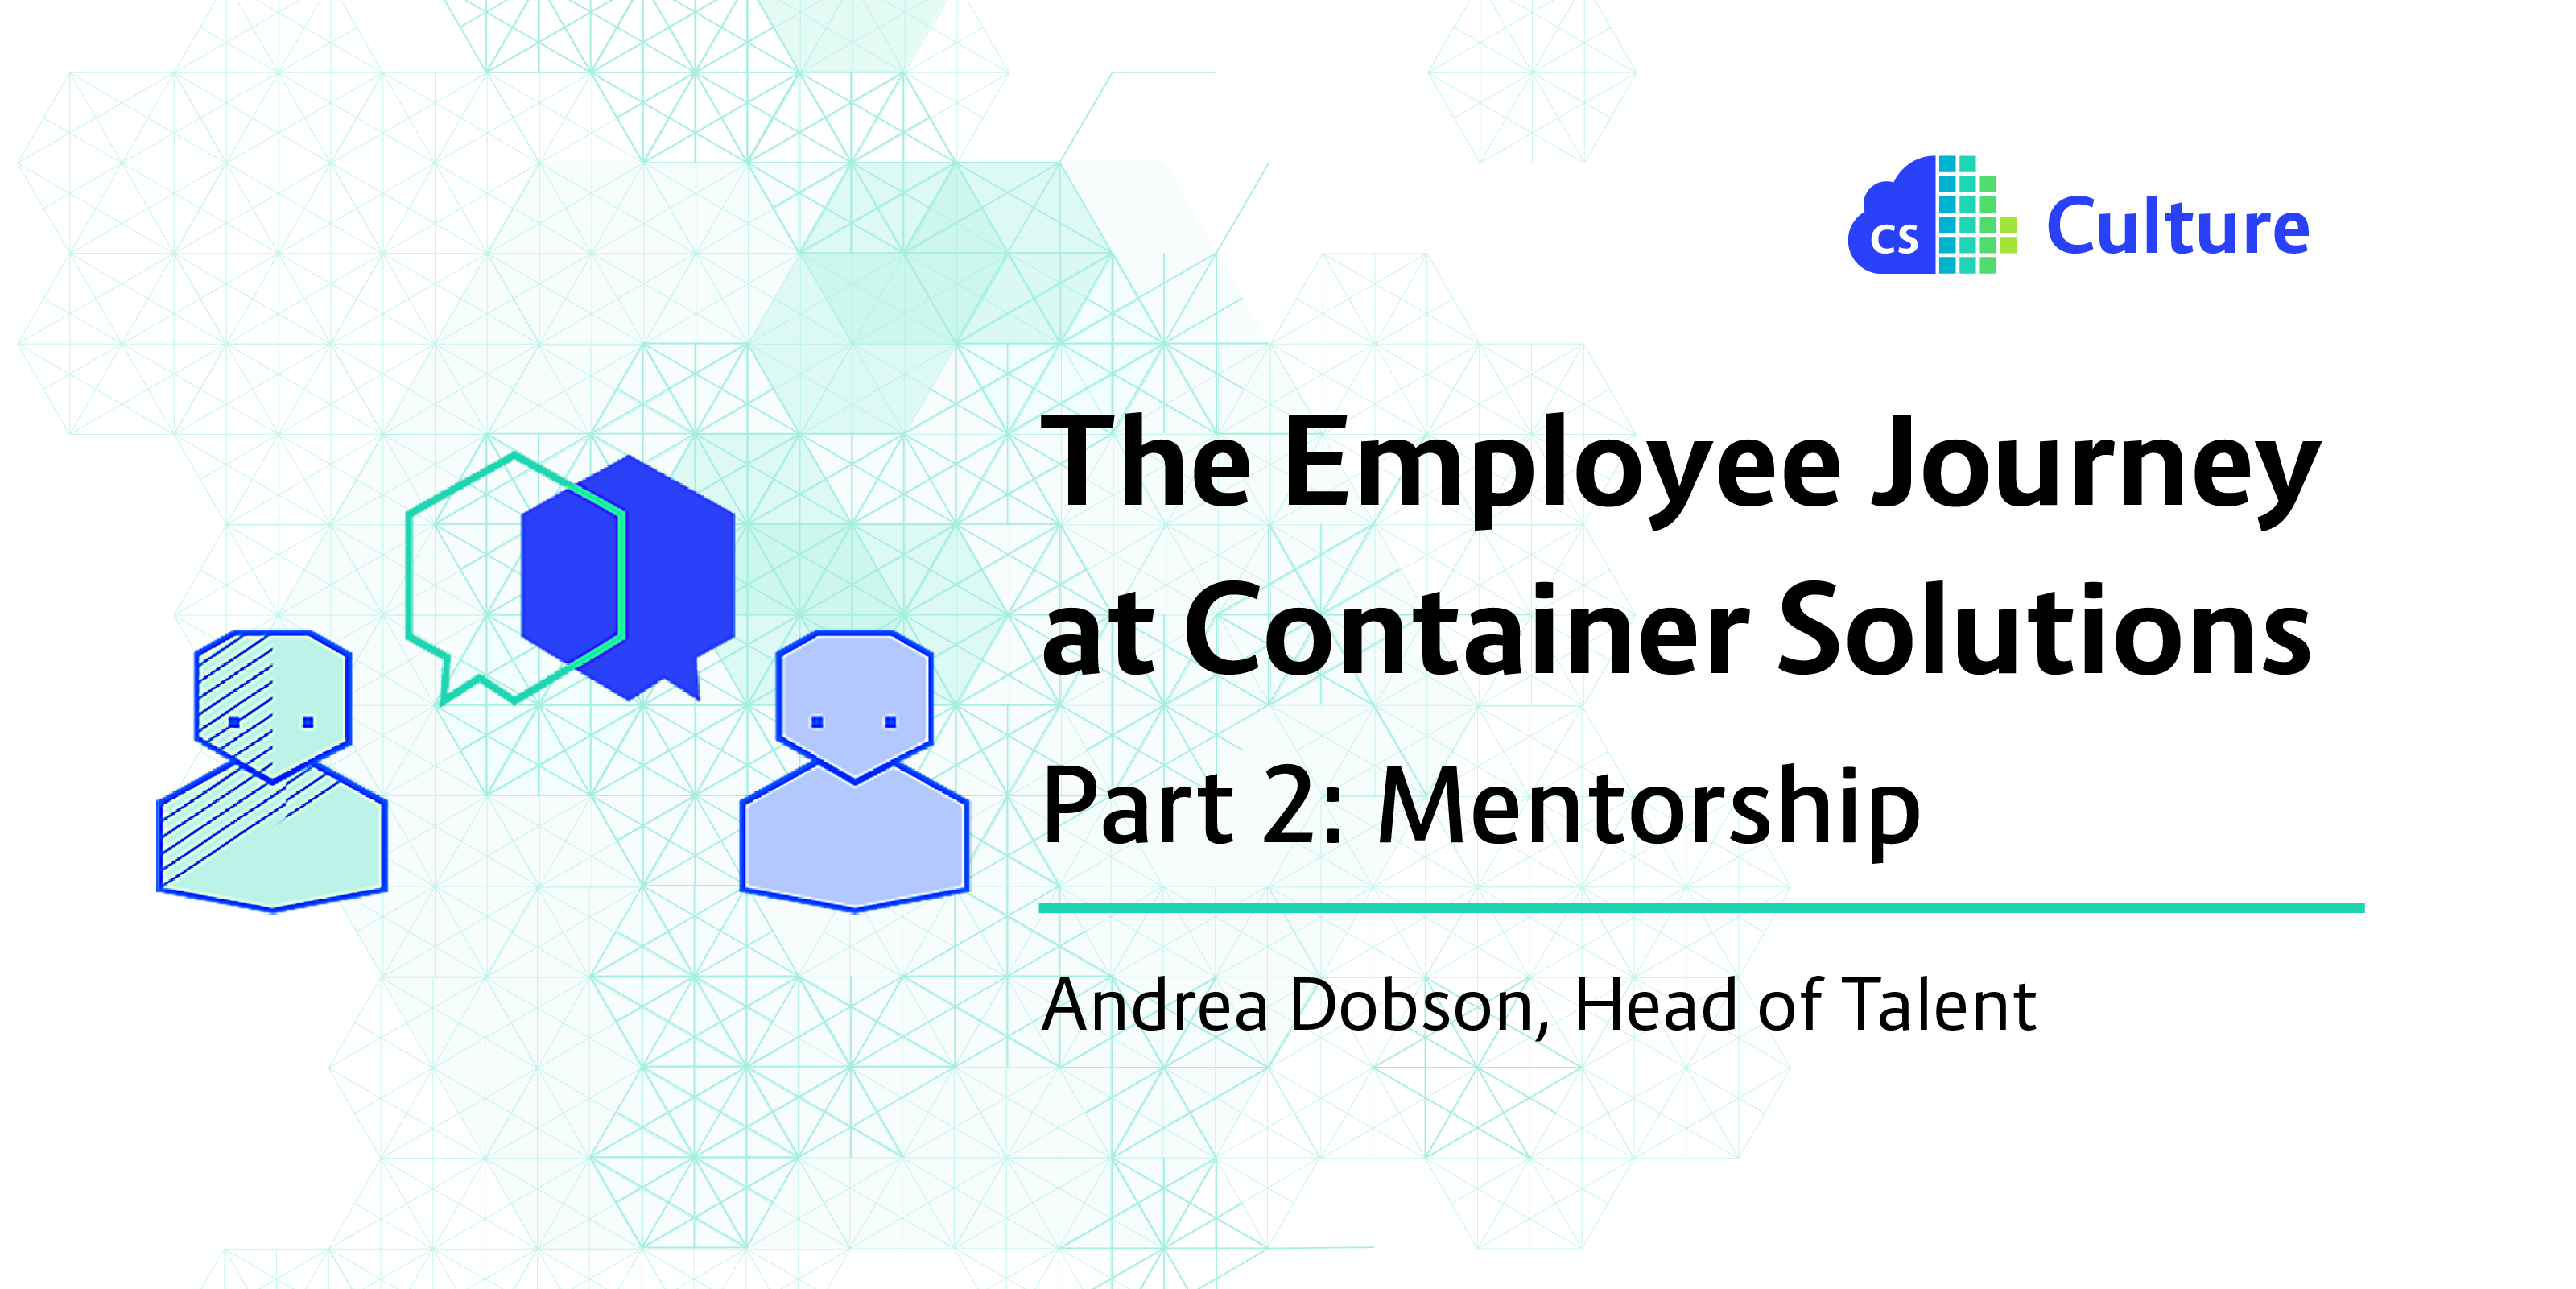 The employee journey at Container Solutions, part 2, mentorship